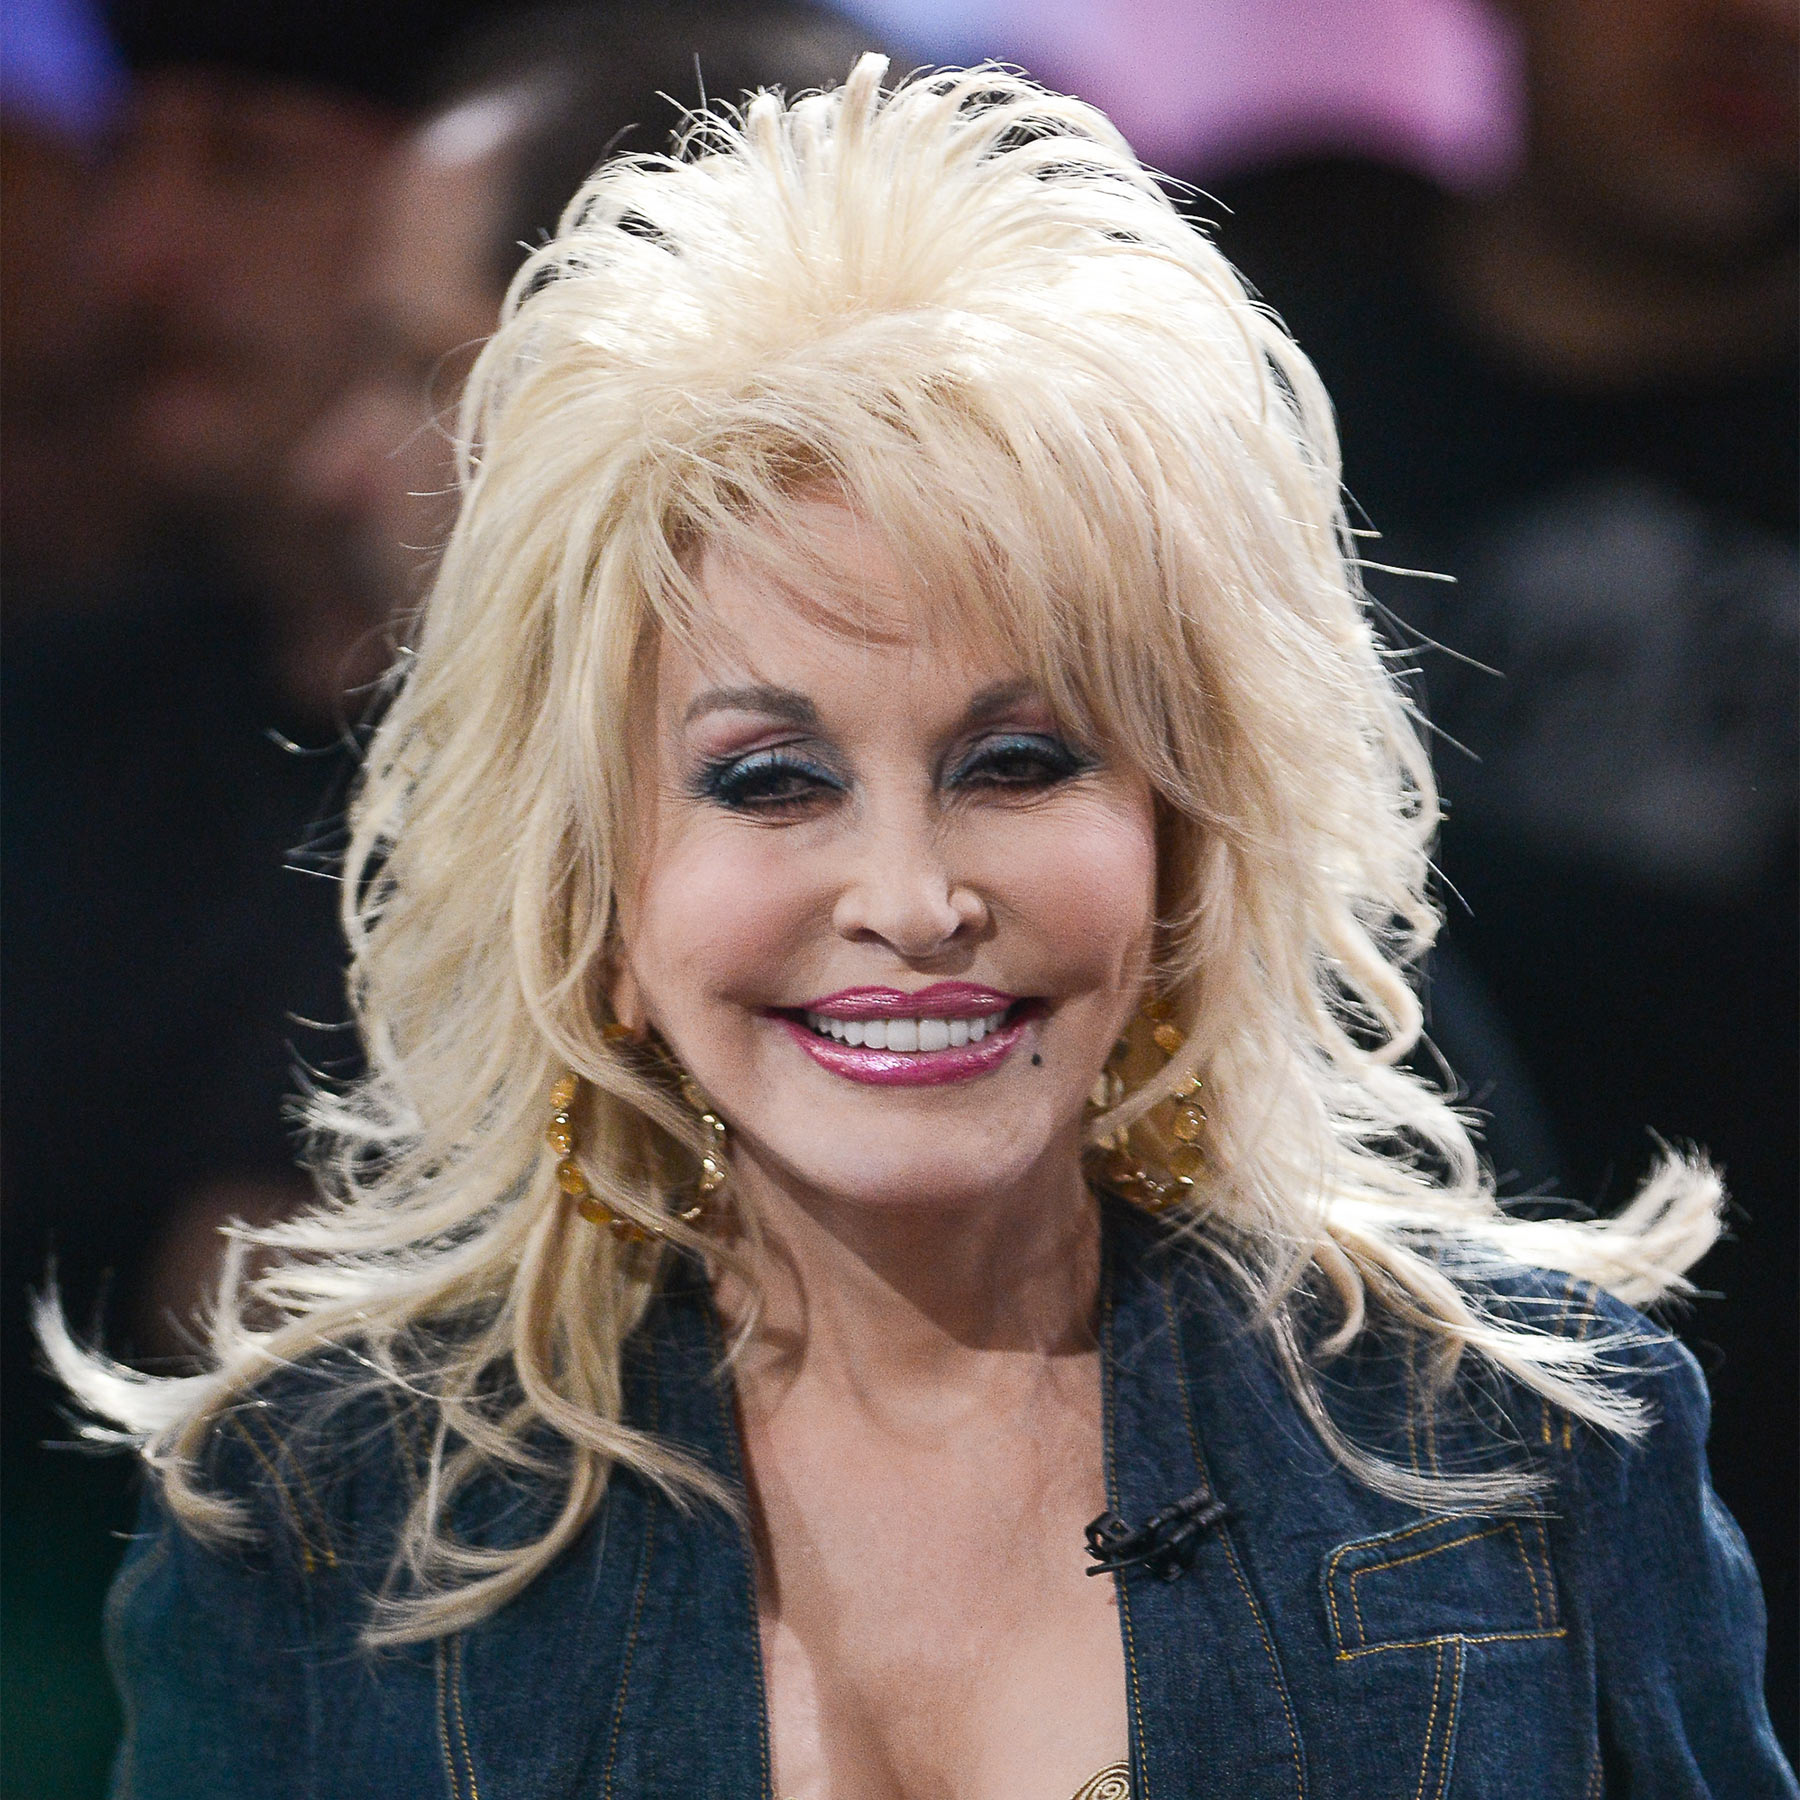 1383504952_dolly-parton-zoom